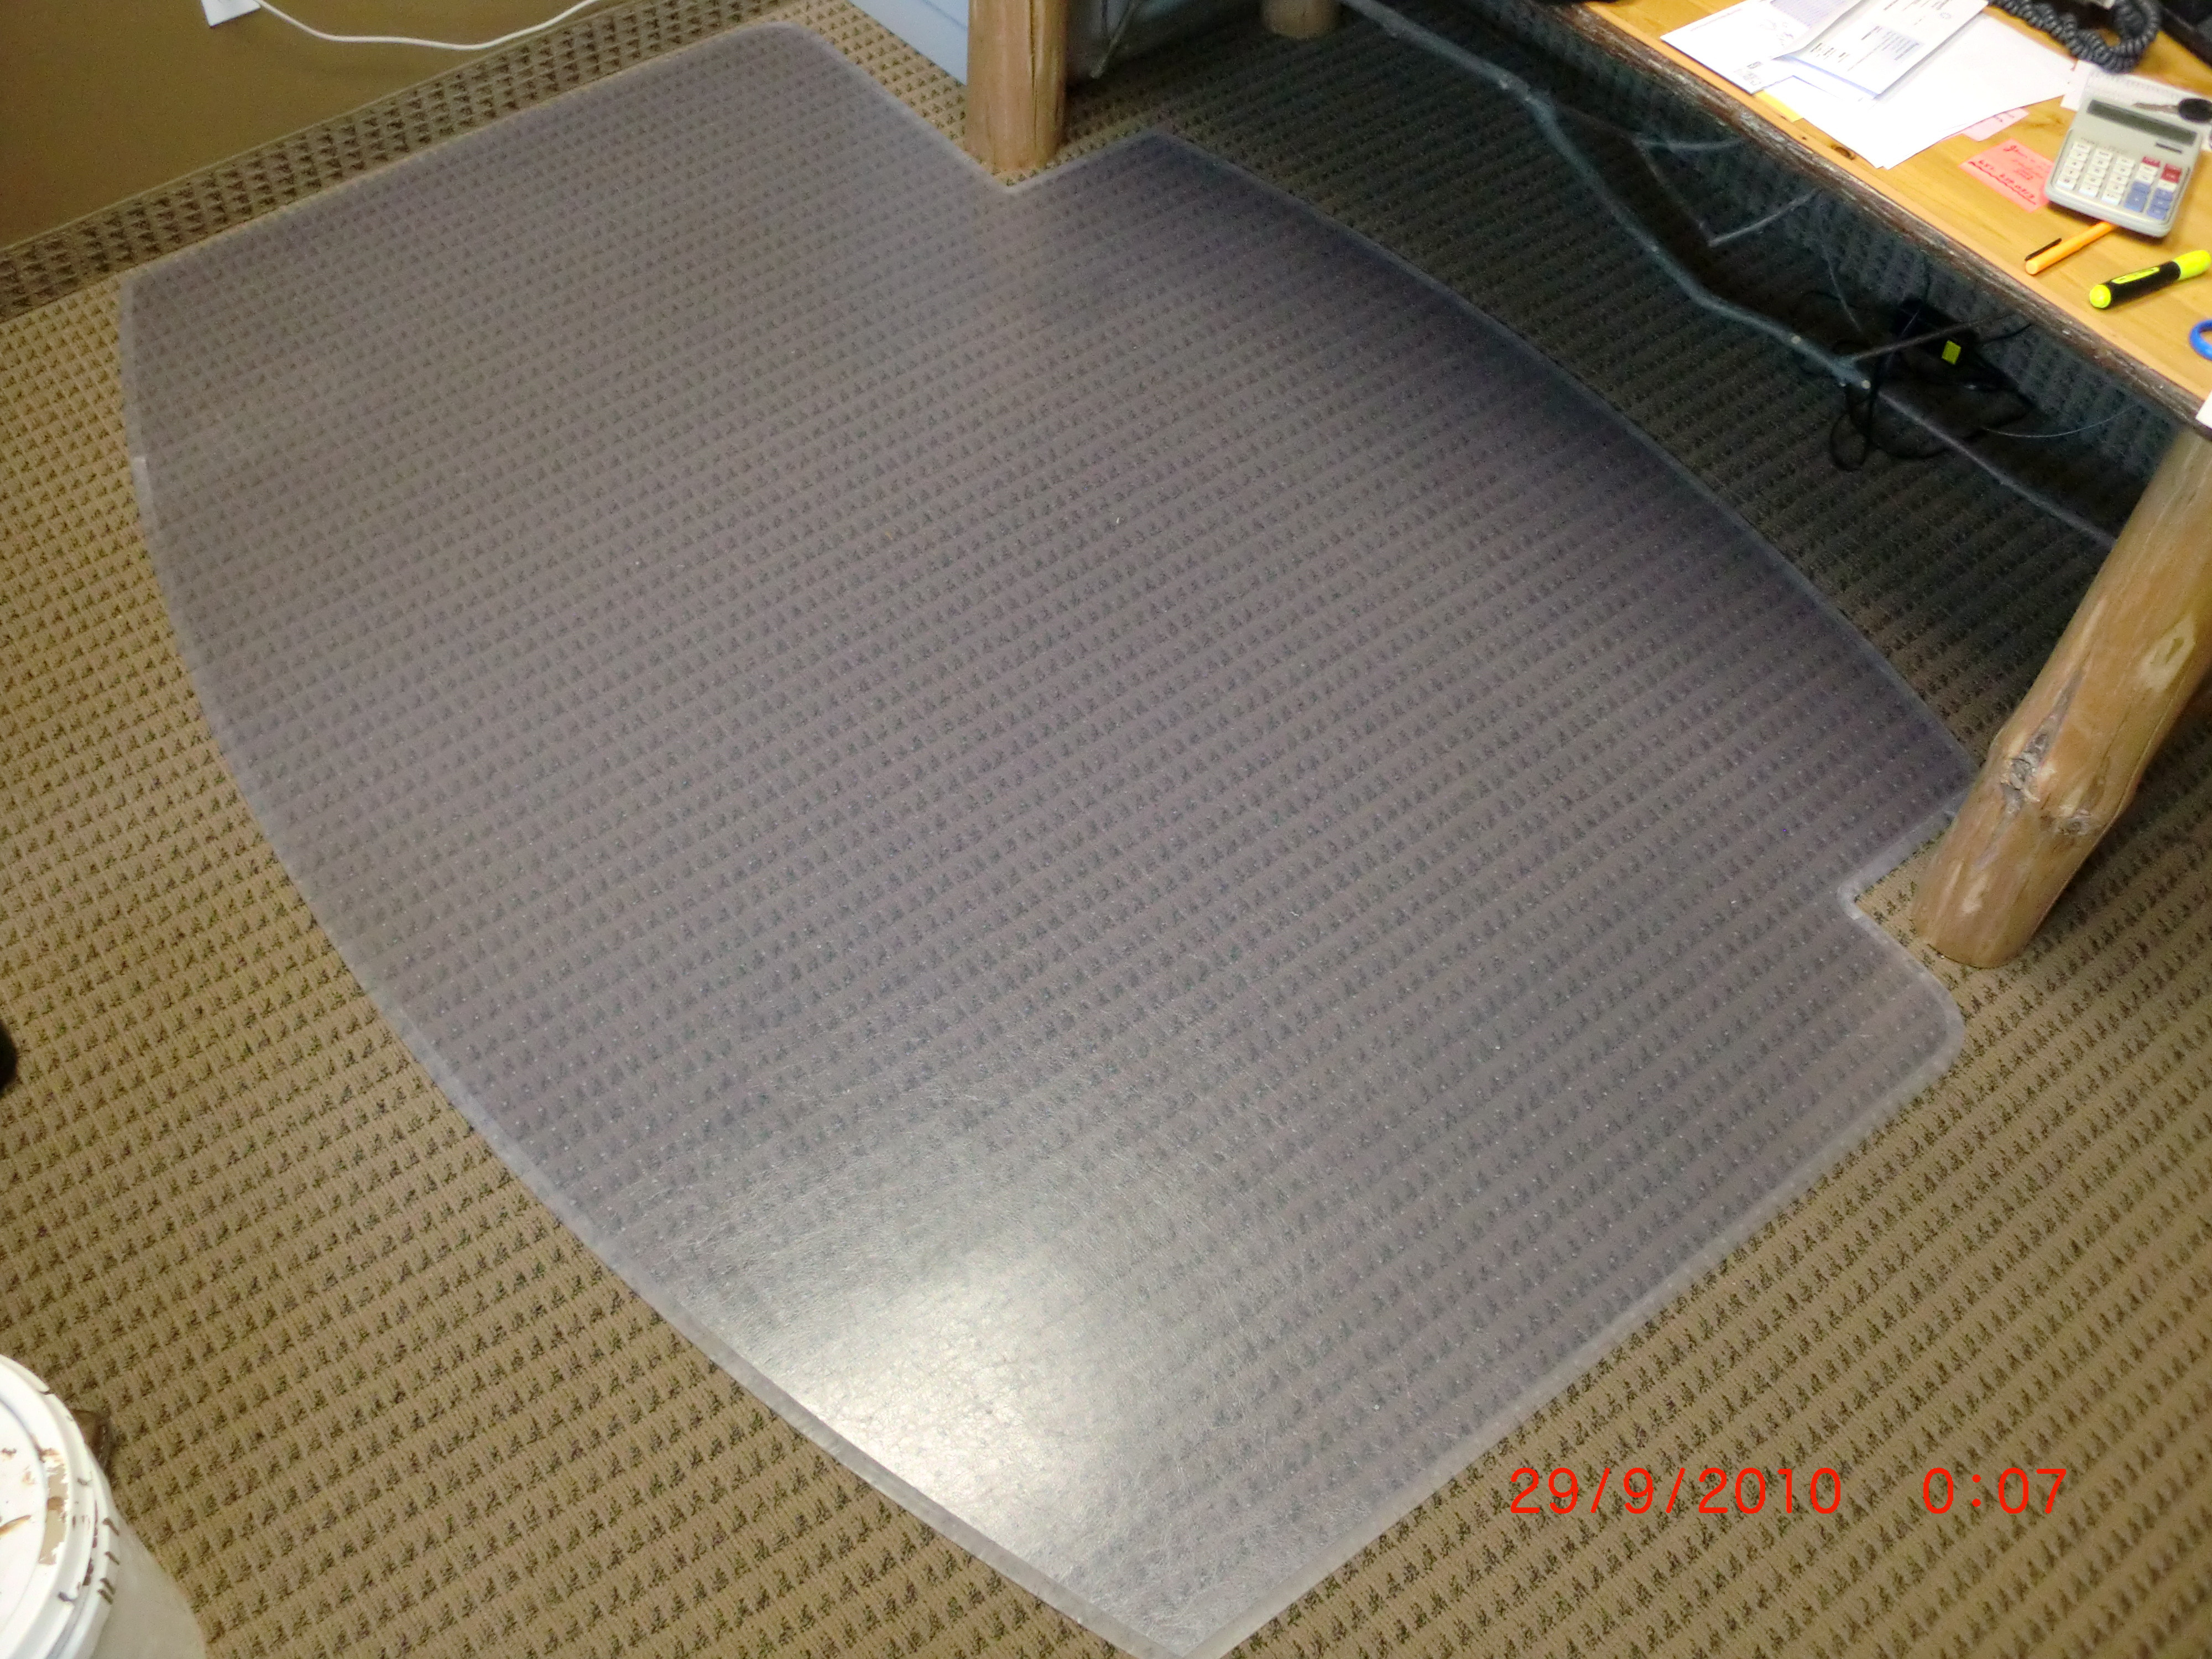 hardwood floor foam tiles of desk chair floor protector mat realspace all pile studded chair mat throughout rug protectors rugs ideas